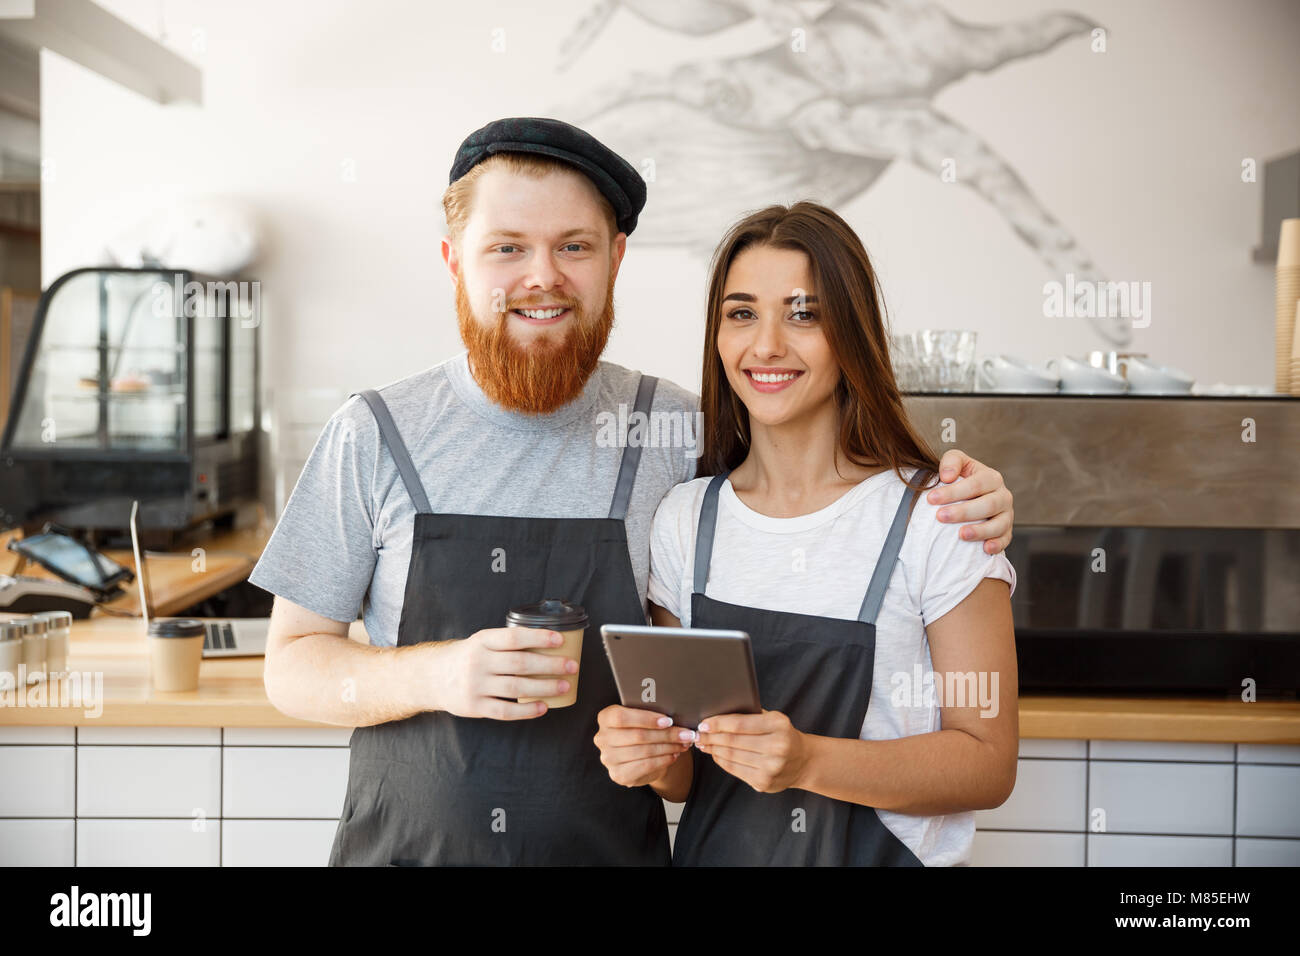 Coffee Business Concept - Portrait of small business partners standing together at their coffee shop  - Stock Image